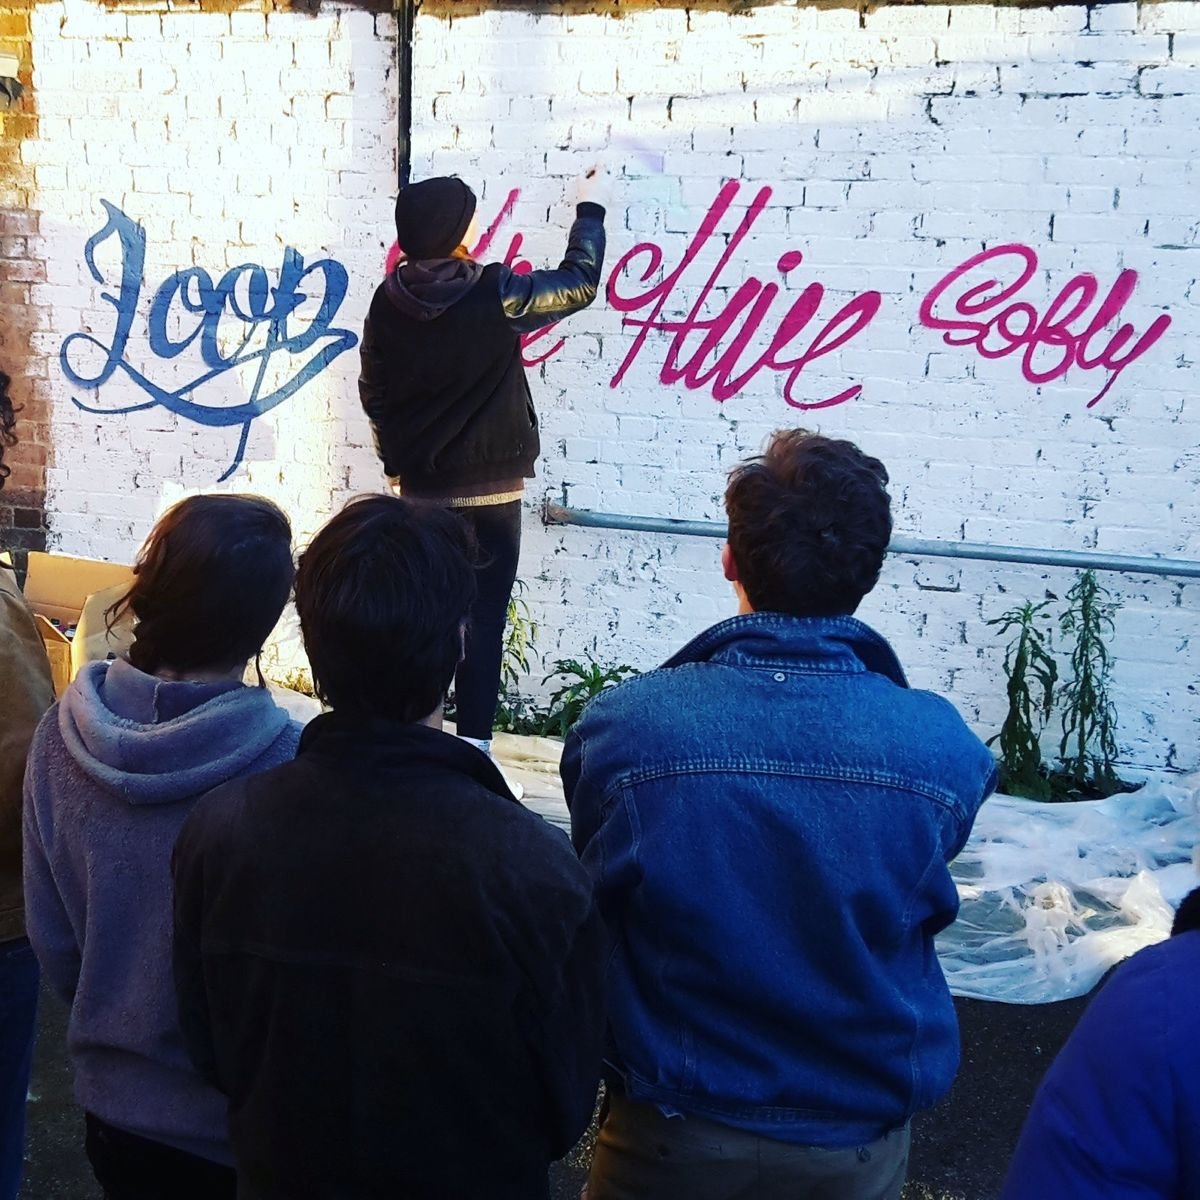 Graffiti workshop spray paint lesson X 4 people - product images  of